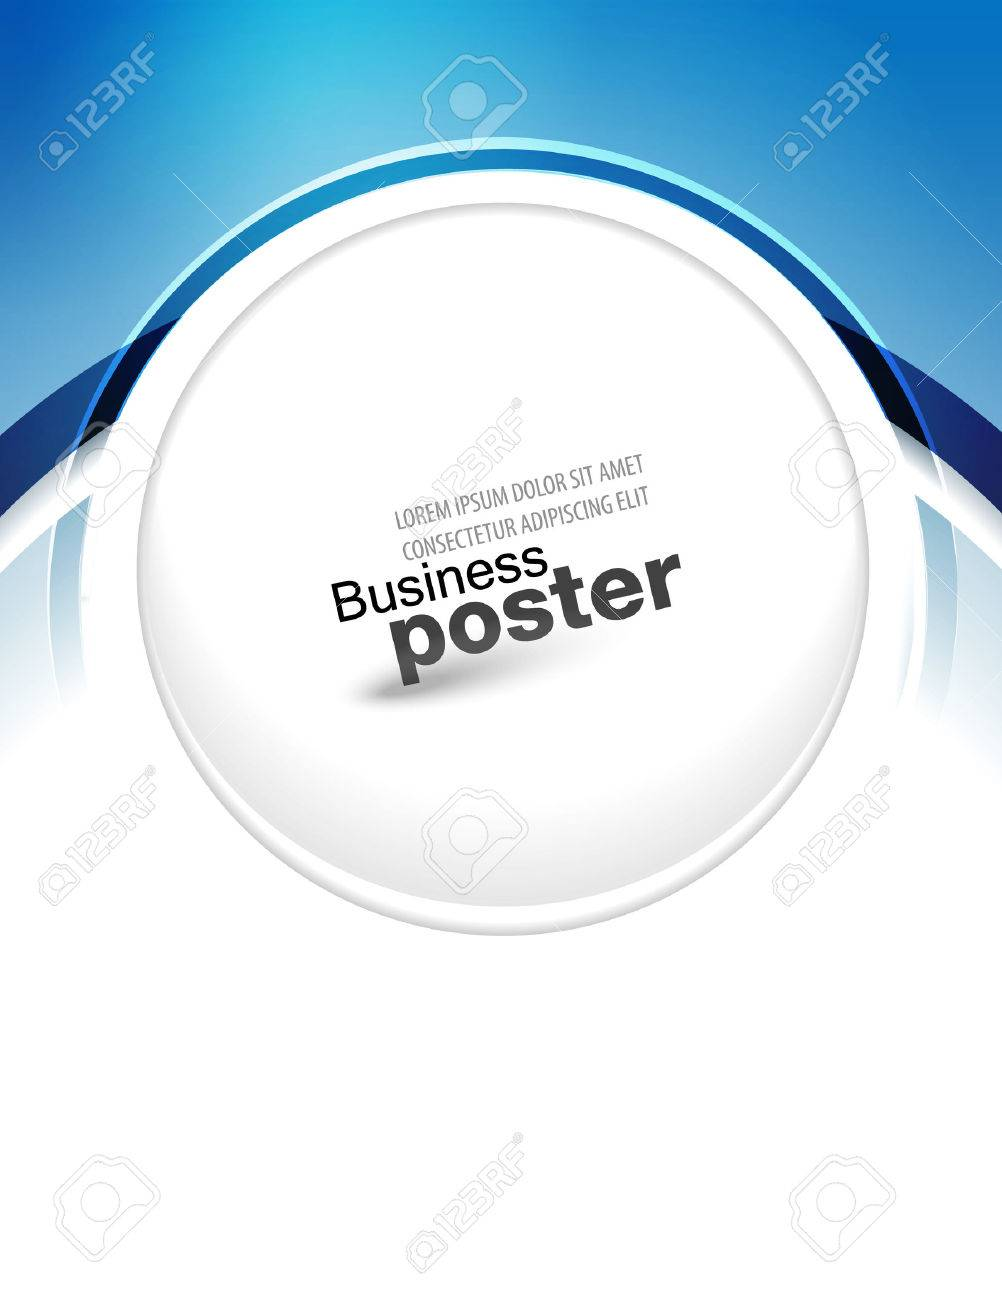 stylish blue presentation of business poster flyer design content background design layout template stock